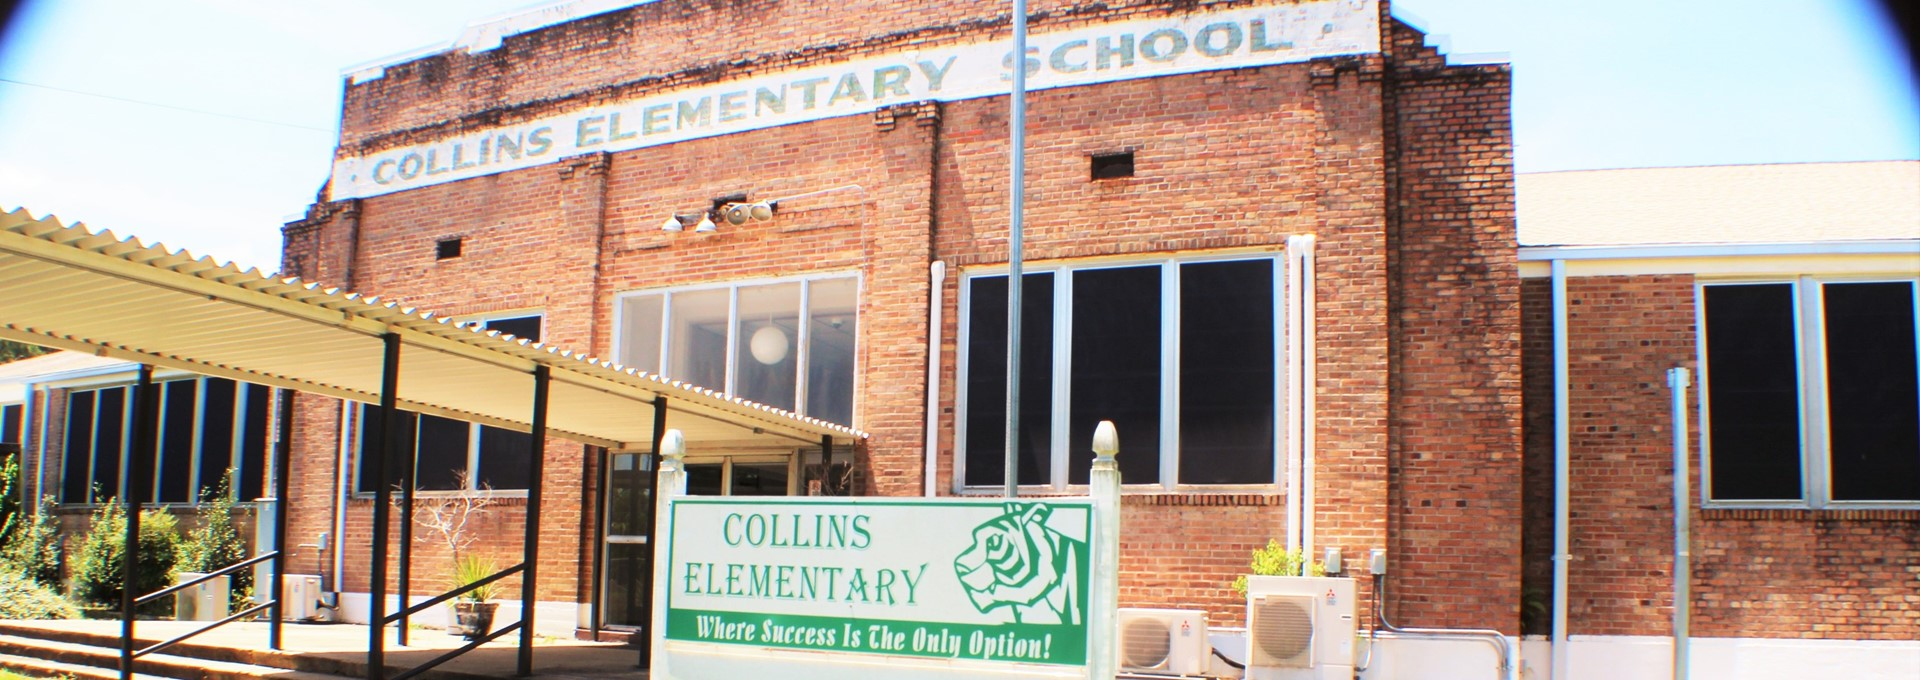 Collins Elementary